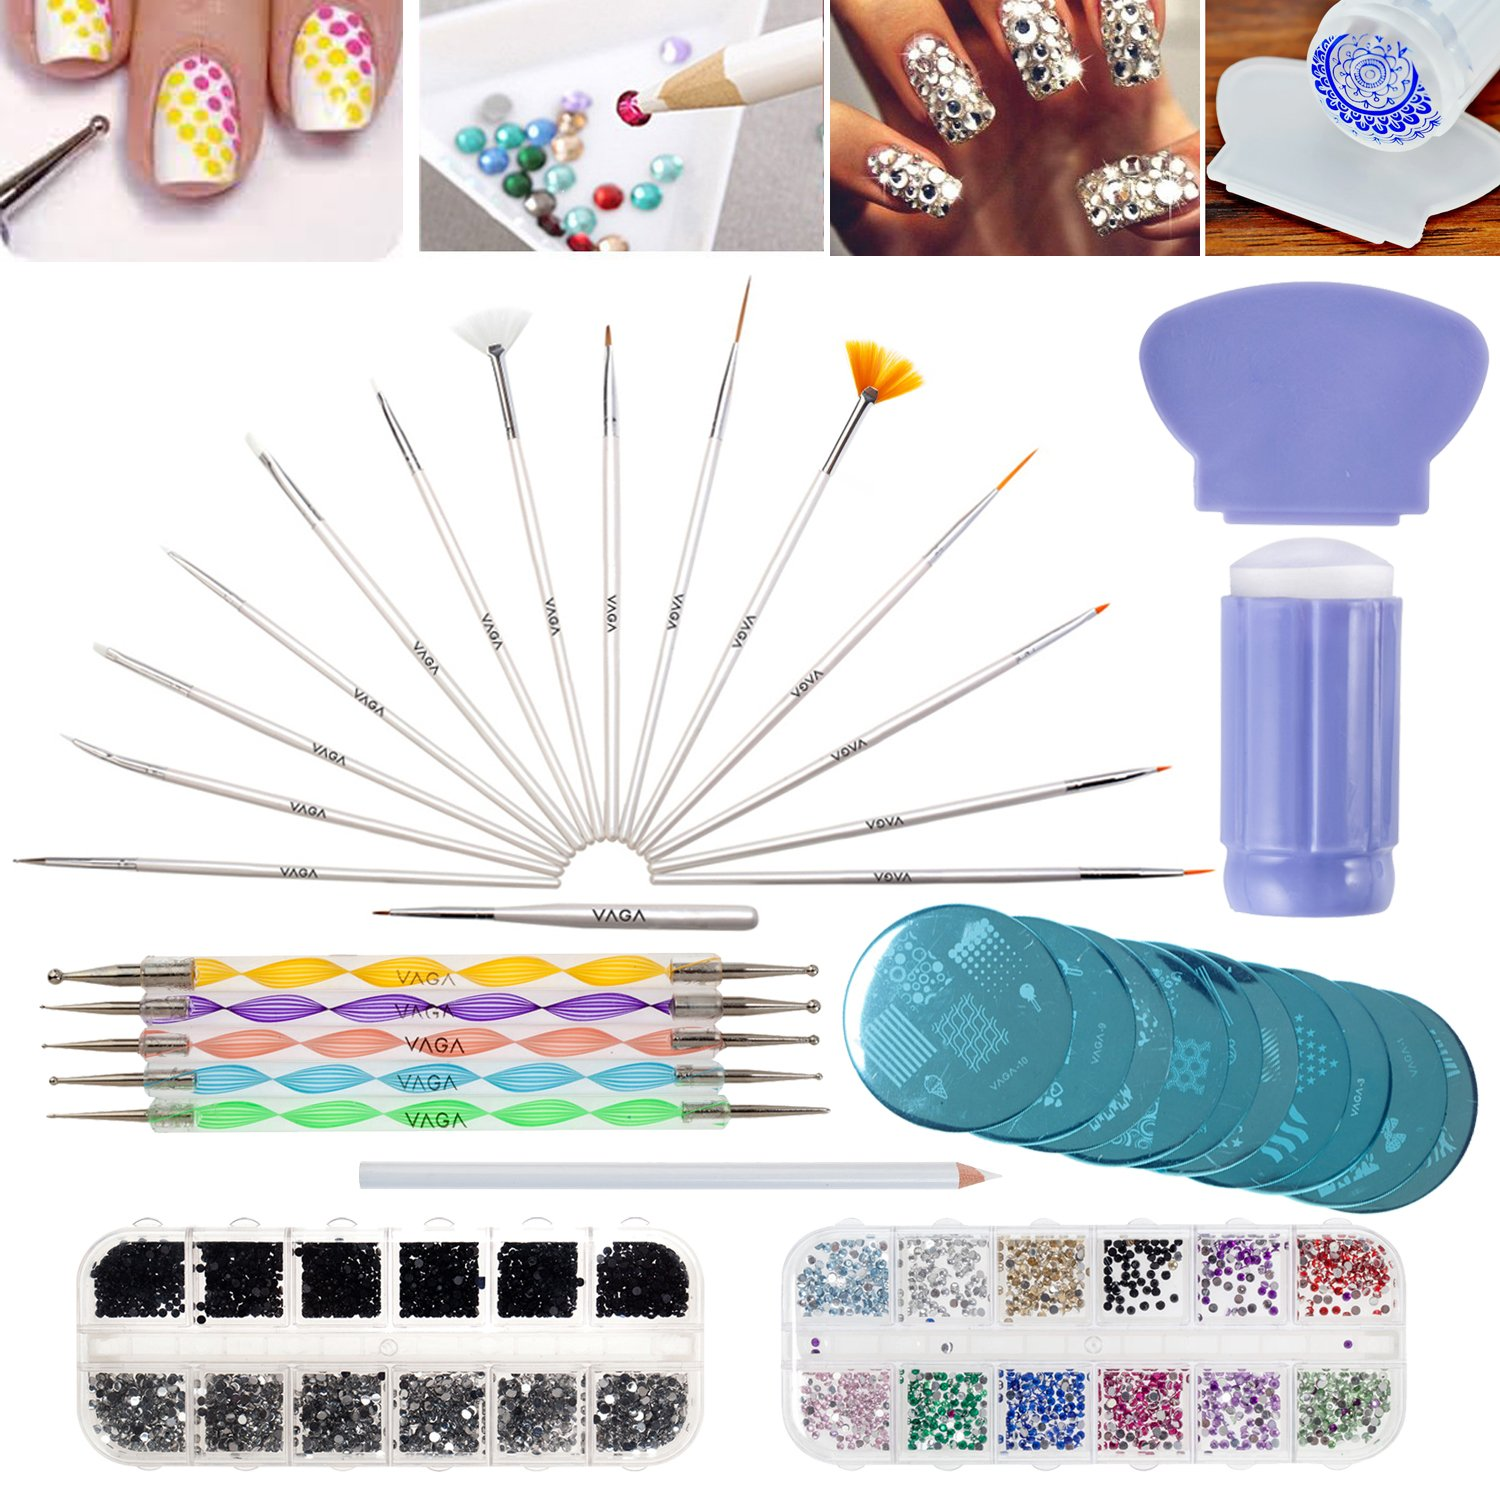 Best Deal Professional Nail Art Designs Set With Boxes of 1500 Gemstones In Different Colours And 1500 Crystals / Gems In Silver And Black Colours, Stampers / Stamps, Scrapers / Scraping Untensils, Stamping Plates / Templates, Dotting Tools, 15 Nails Brush